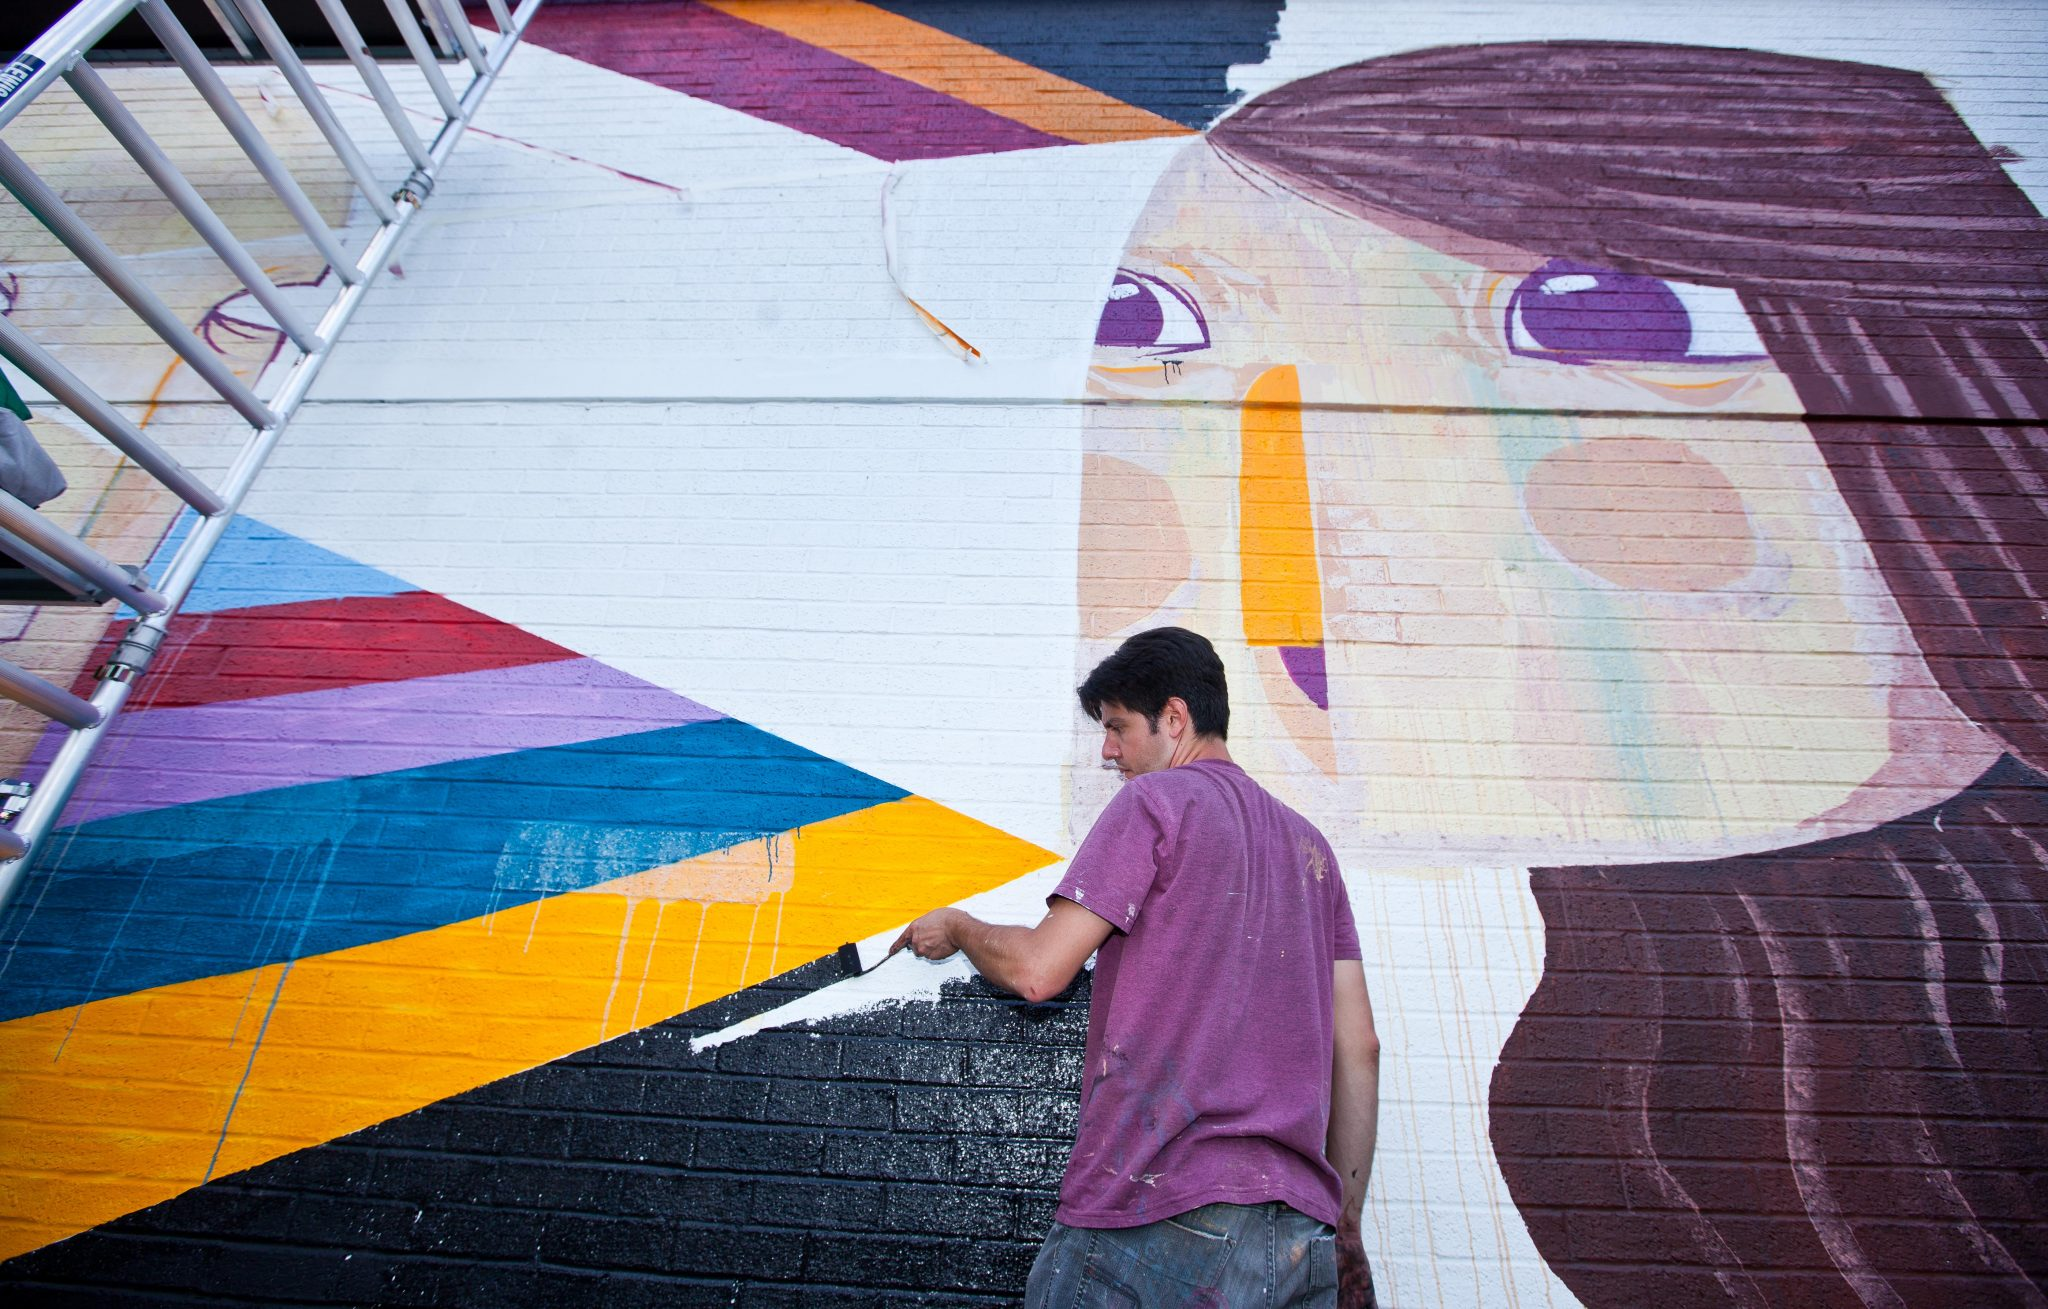 Brazilian Artist and Illustrator Caio Beltran works on his contribution at the UK's first bookable interactive art space in King's Cross, London June 18th, 2017. The giant public canvas is a wall of the Attic self-storage facility on York Way, and via a web app art lovers can vote for a piece to remain or be removed and repainted. Pic by Ben Gurr